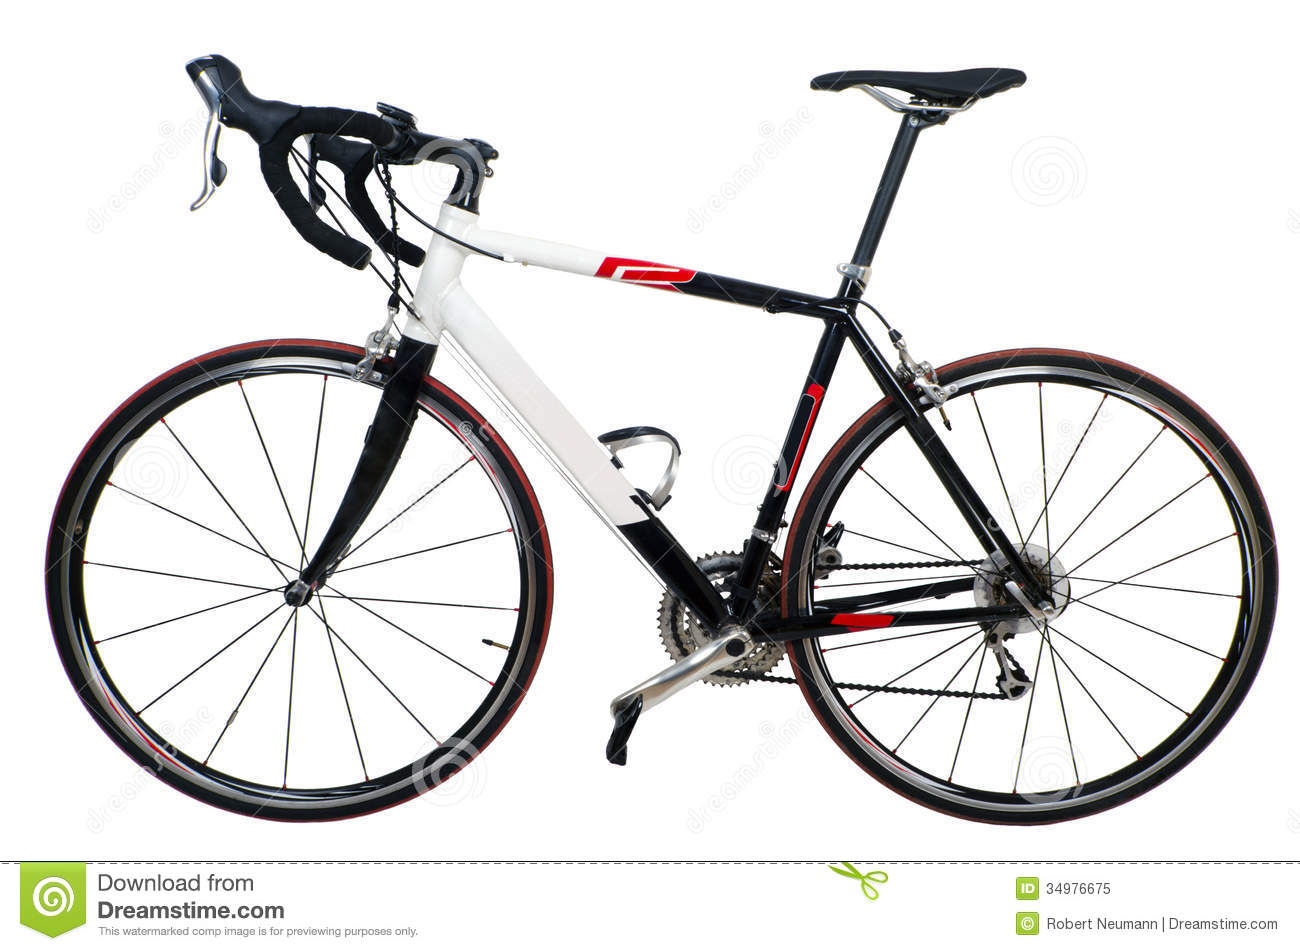 [Image: racing-cycle-white-isolated-background-34976675.jpg]